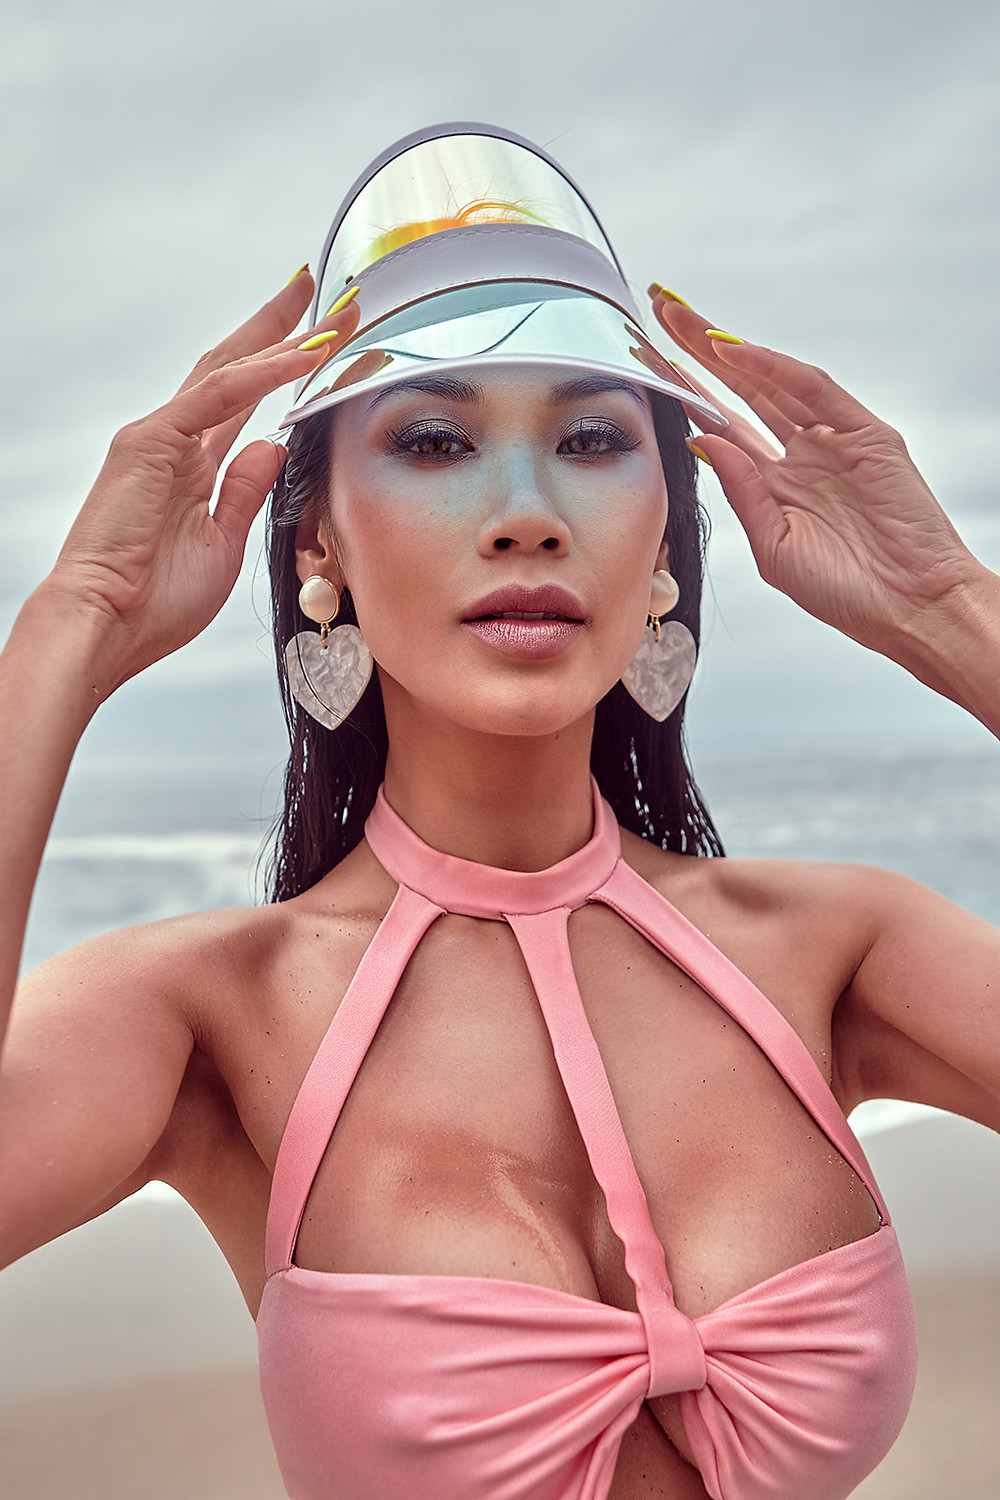 Model and fashion influencer Claire Reine Godard poses in a translucent visor and strappy pink bikini on the sand in Laguna Beach for a swimwear editorial shot by Patrick Patton for New Face Magazine July 2019.